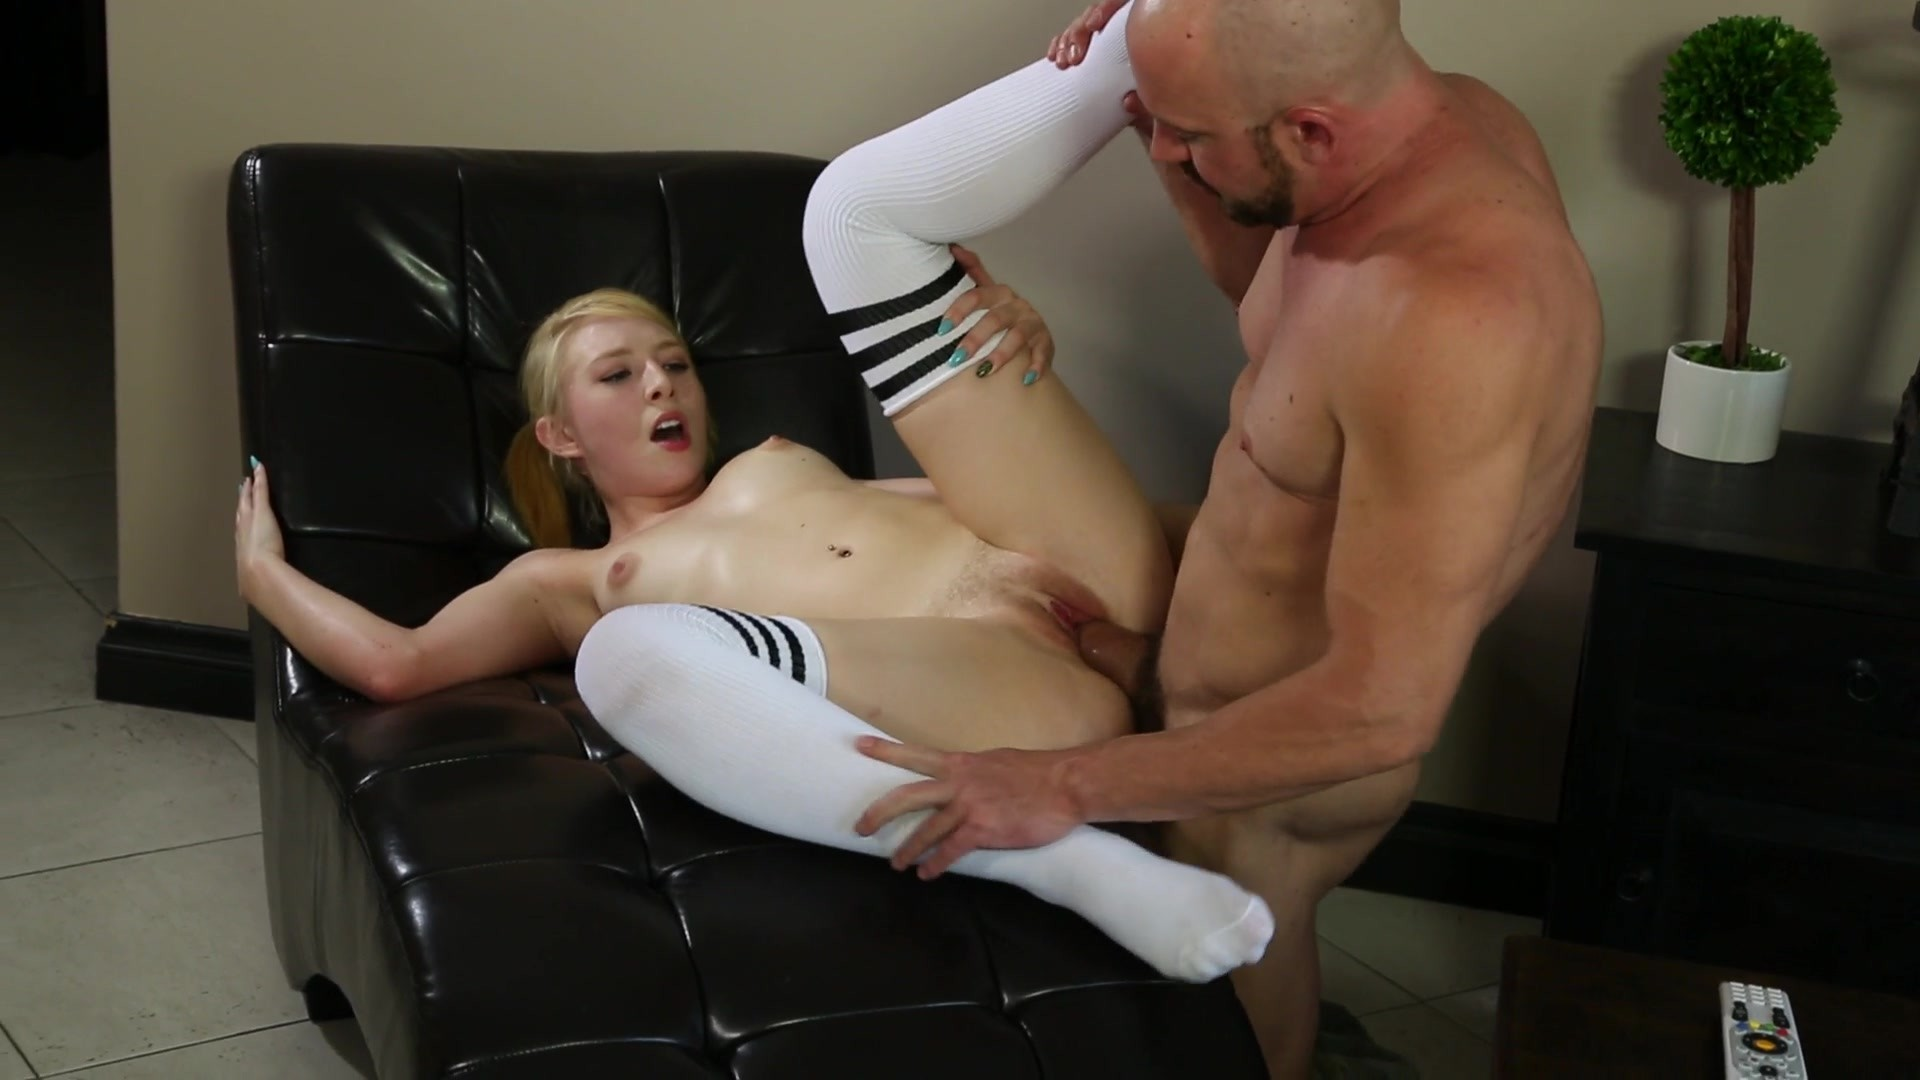 Gorgeous Blonde Babe Gets Fucked by an Older Man with a Big Cock Starring: Trillium